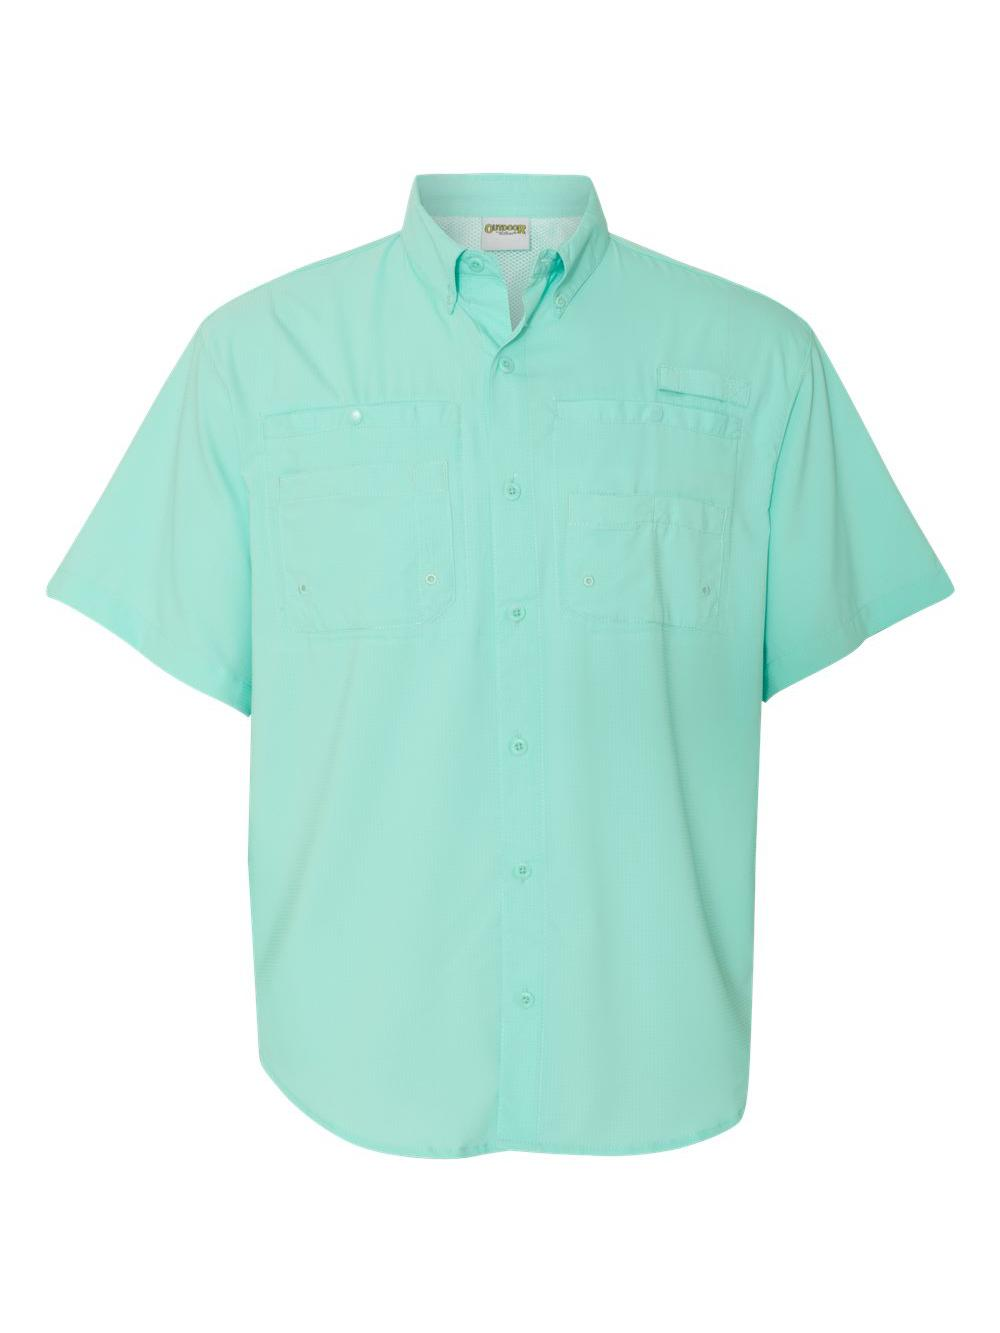 Hilton-Baja-Short-Sleeve-Fishing-Shirt-ZP2297 thumbnail 12